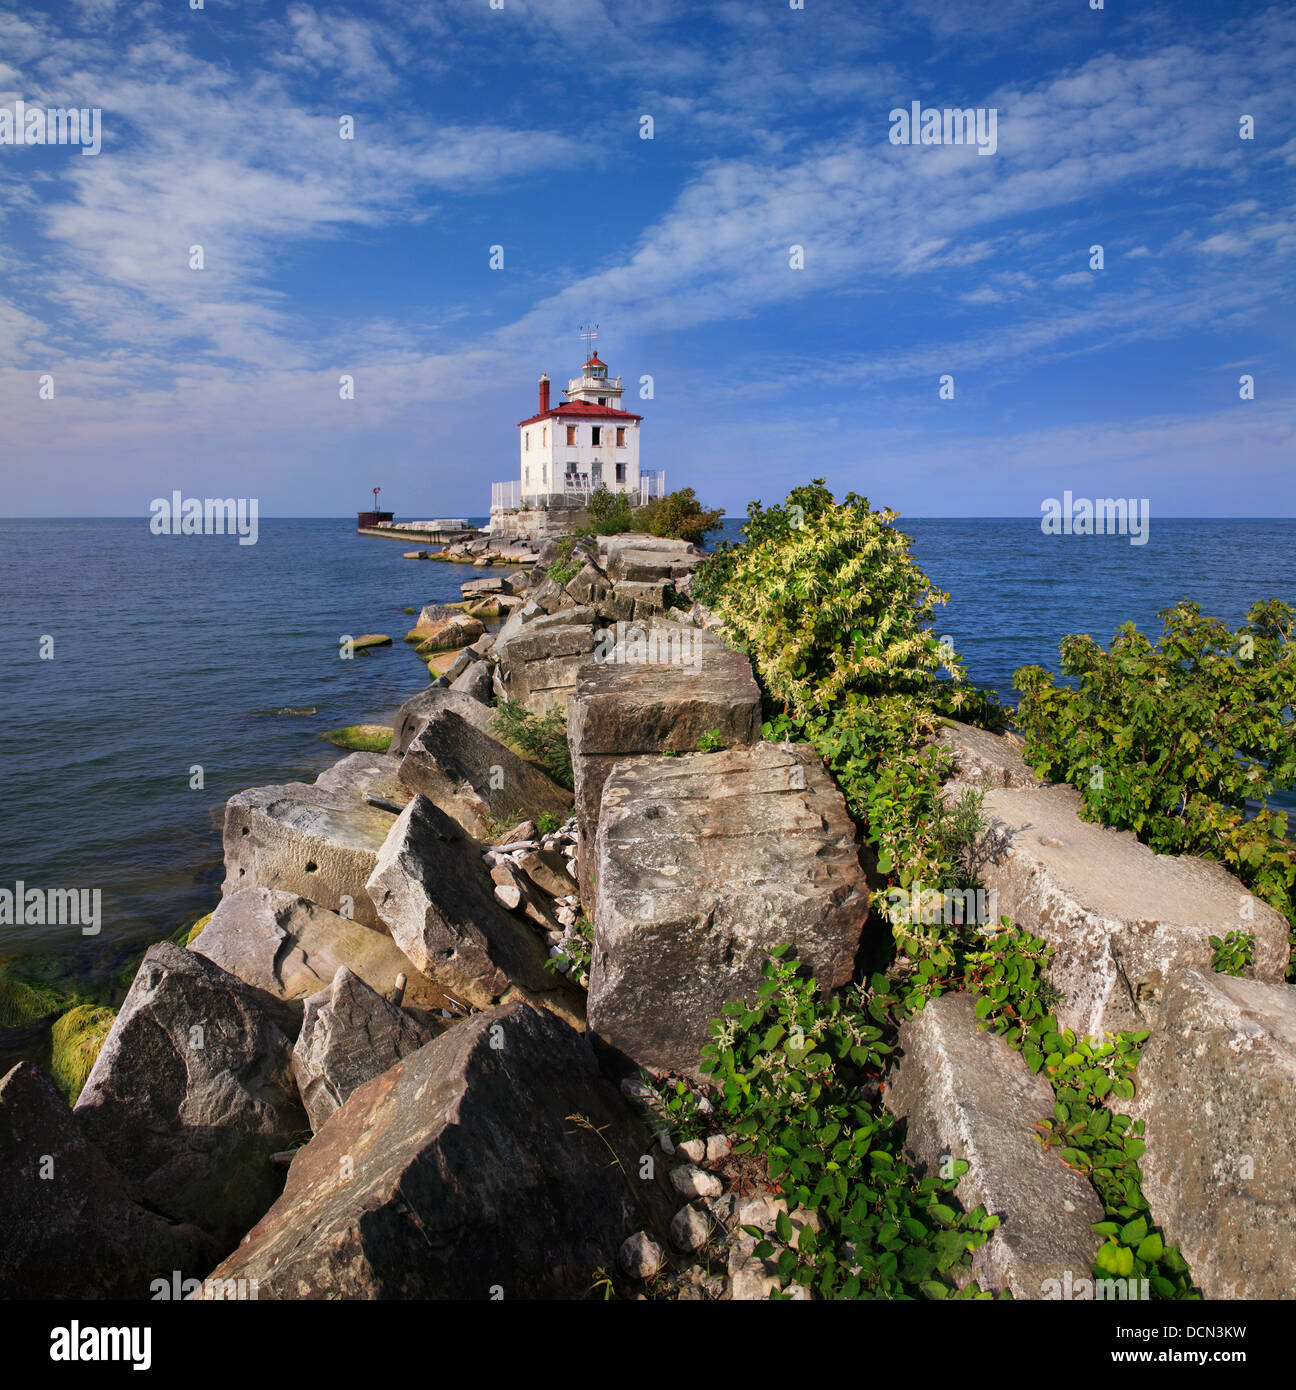 A Classic Lake Erie Lighthouse, The Fairport Harbor West Breakwater Light On A Beautiful Day In Fairport Ohio, USA - Stock Image